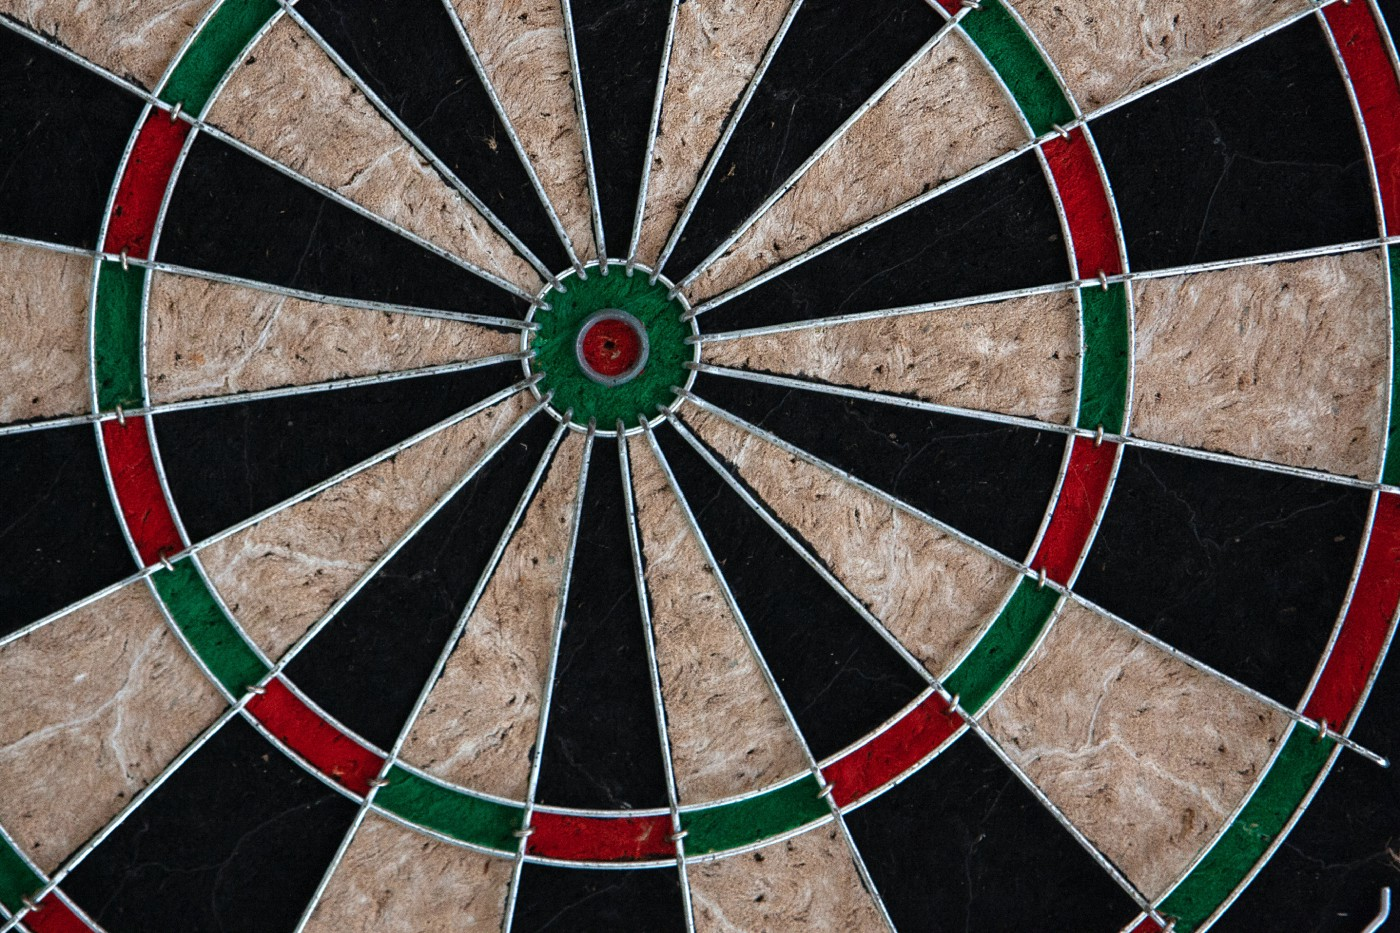 A close-up photo of a dartboard. Photo by Karen Laårk Boshoff at https://www.pexels.com/photo/black-red-and-white-round-decor-6758919/.